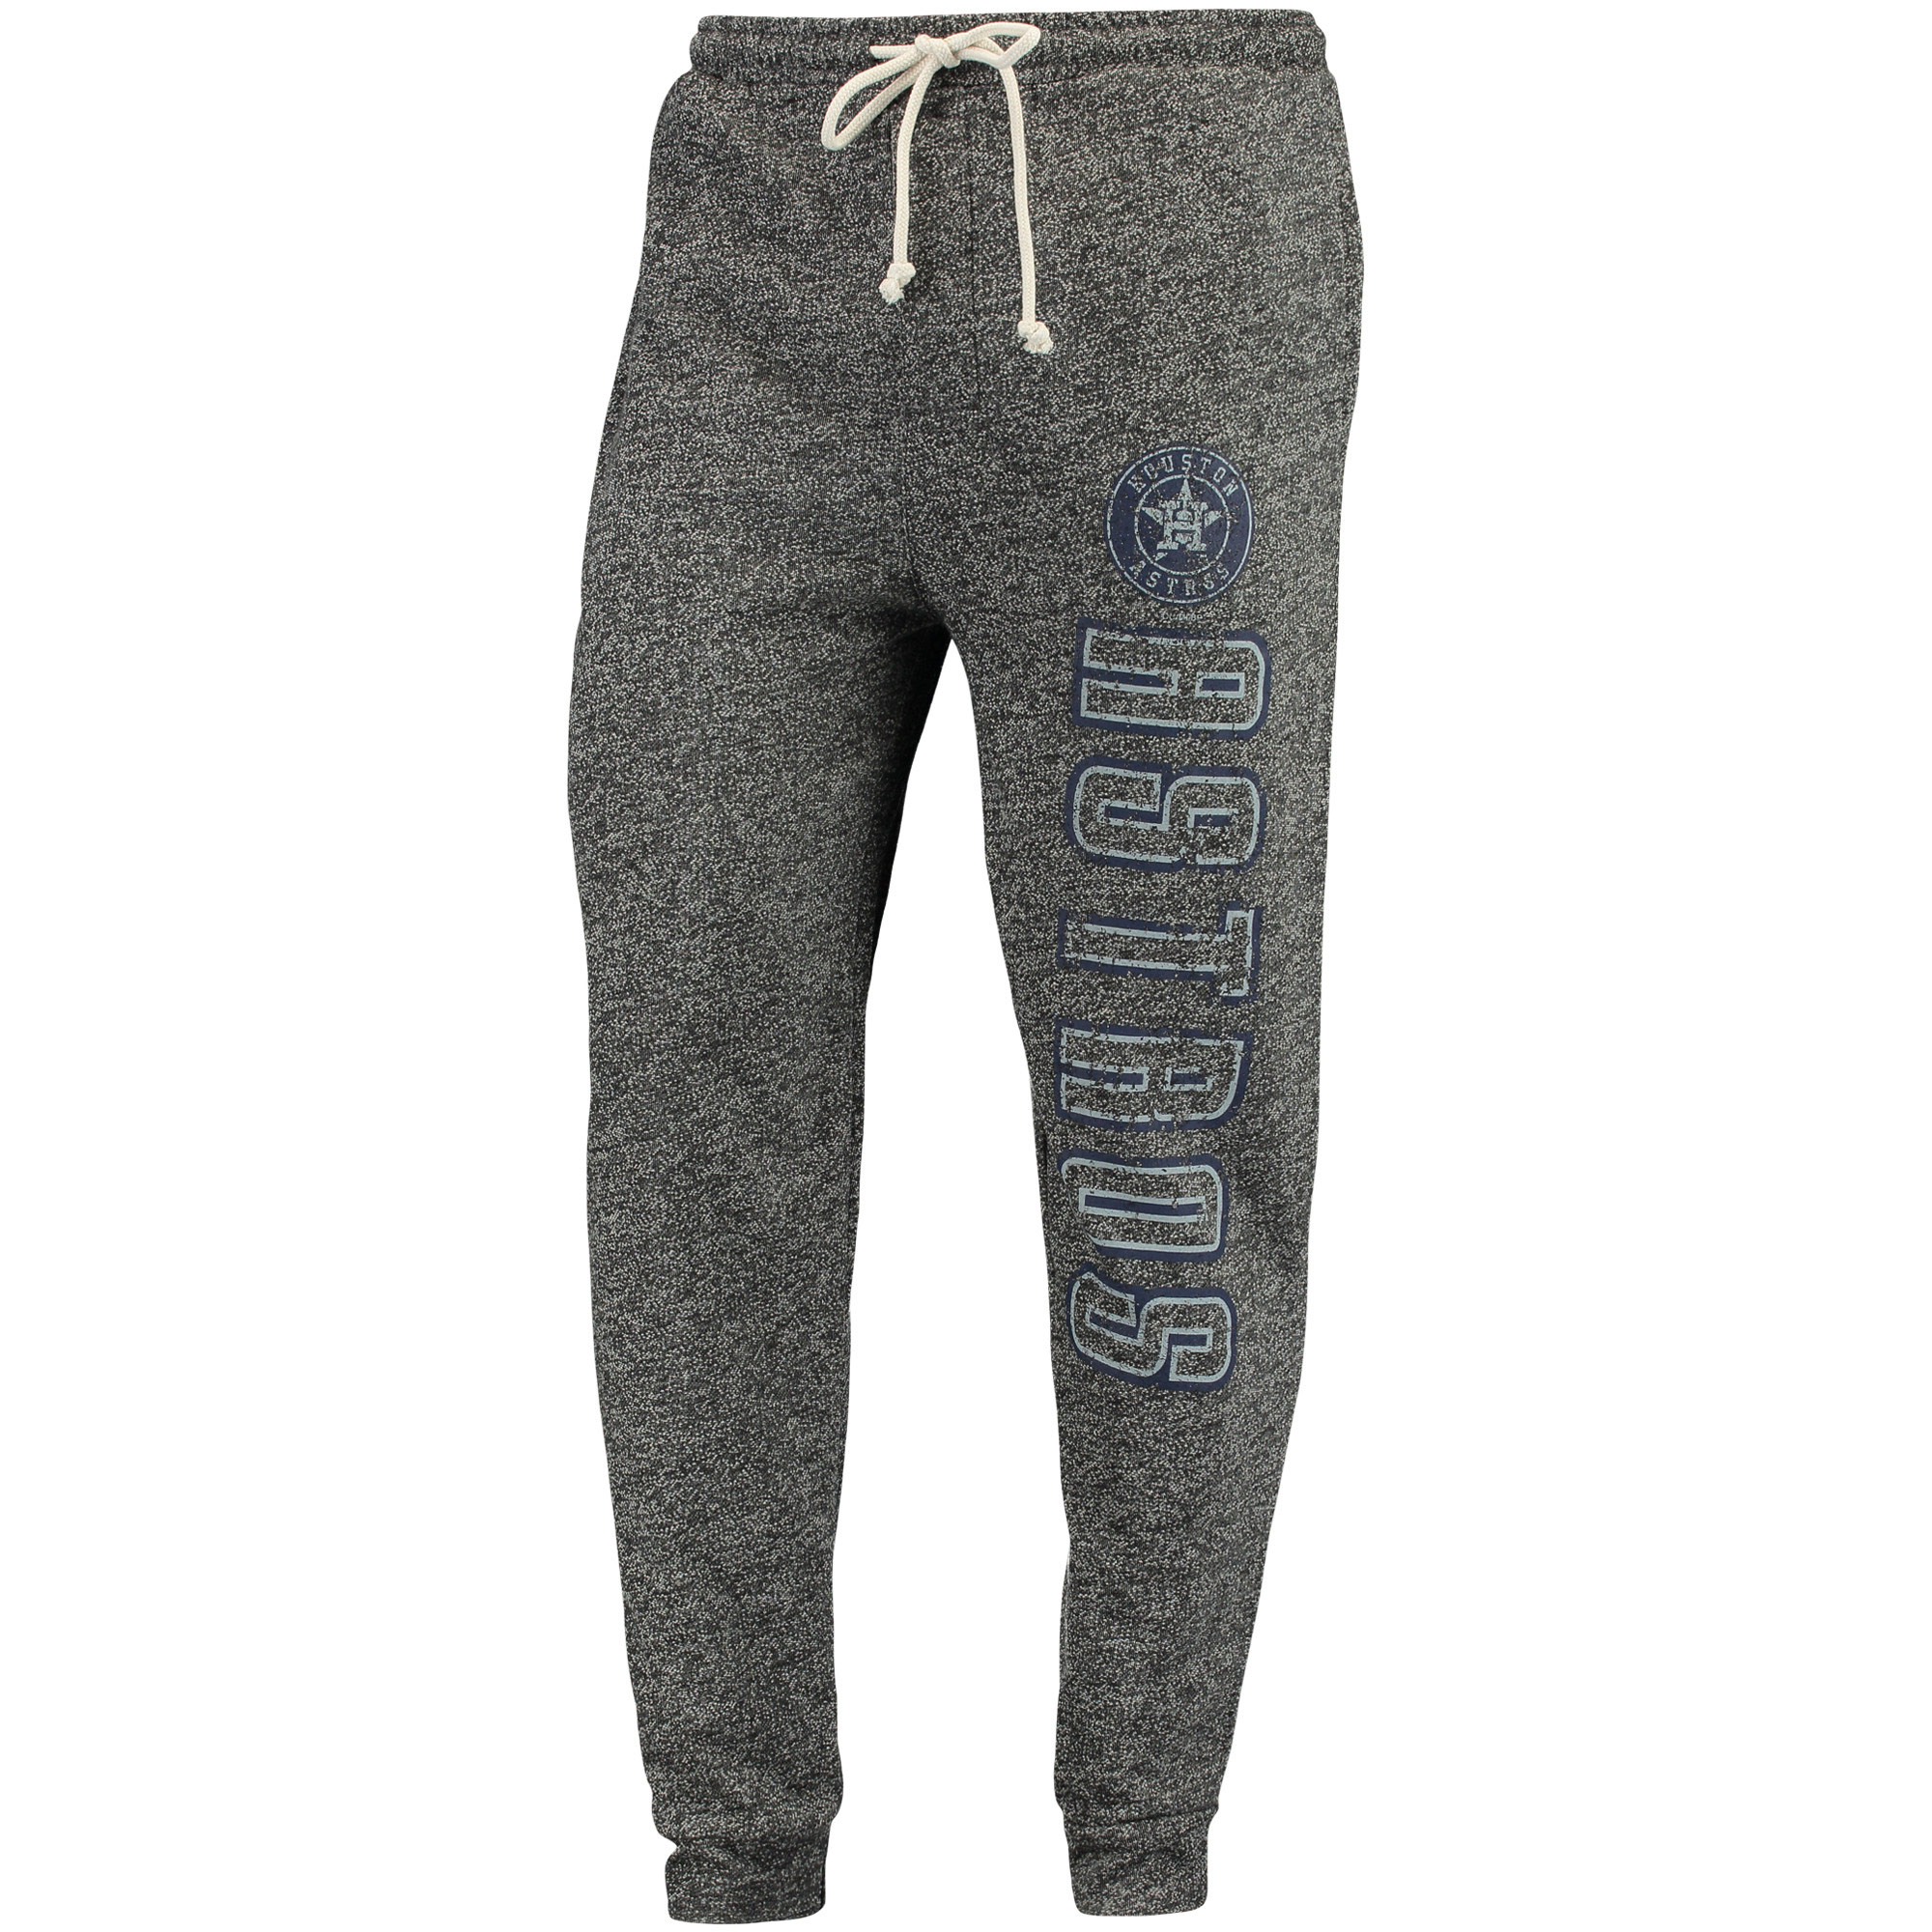 Houston Astros Concepts Sport Pinpoint French Terry Cuffed Pant - Charcoal